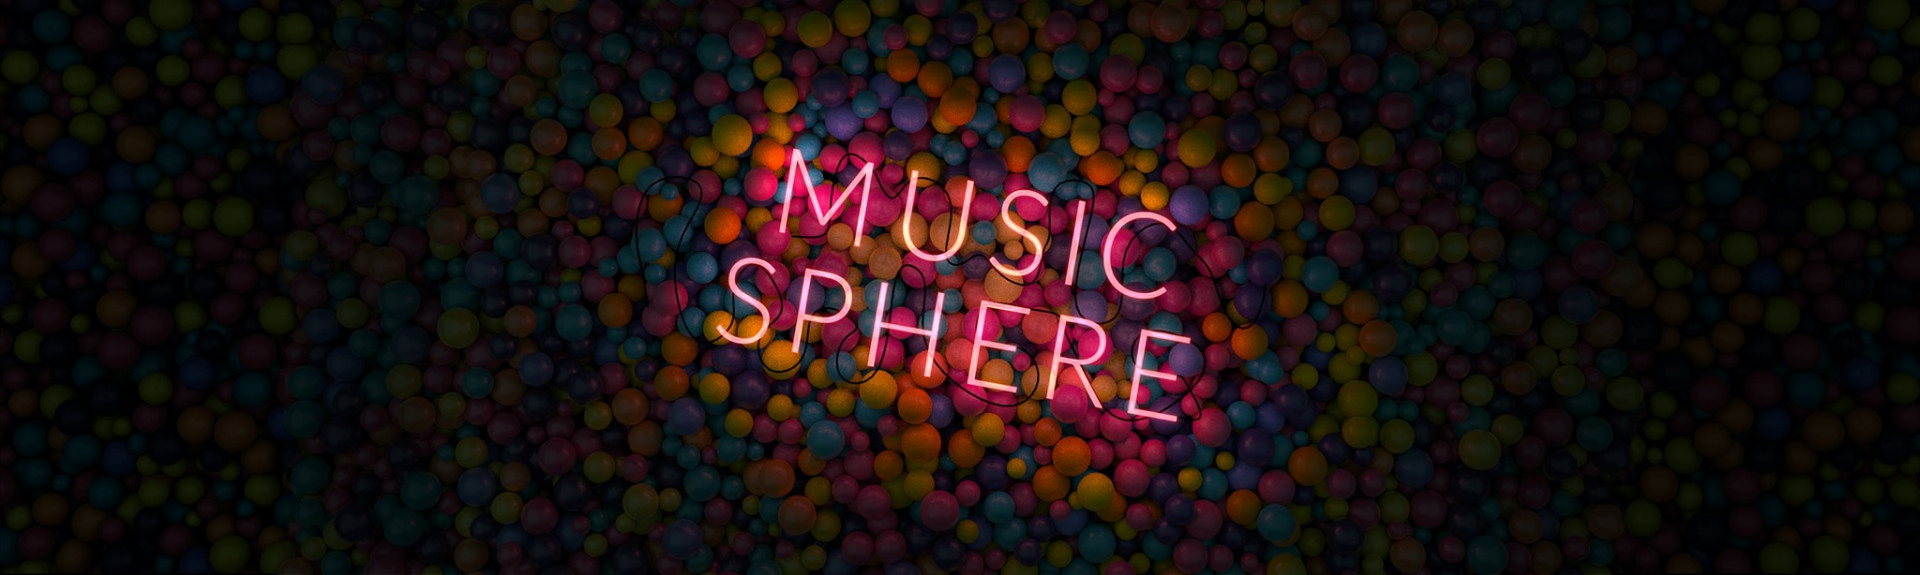 Music Sphere